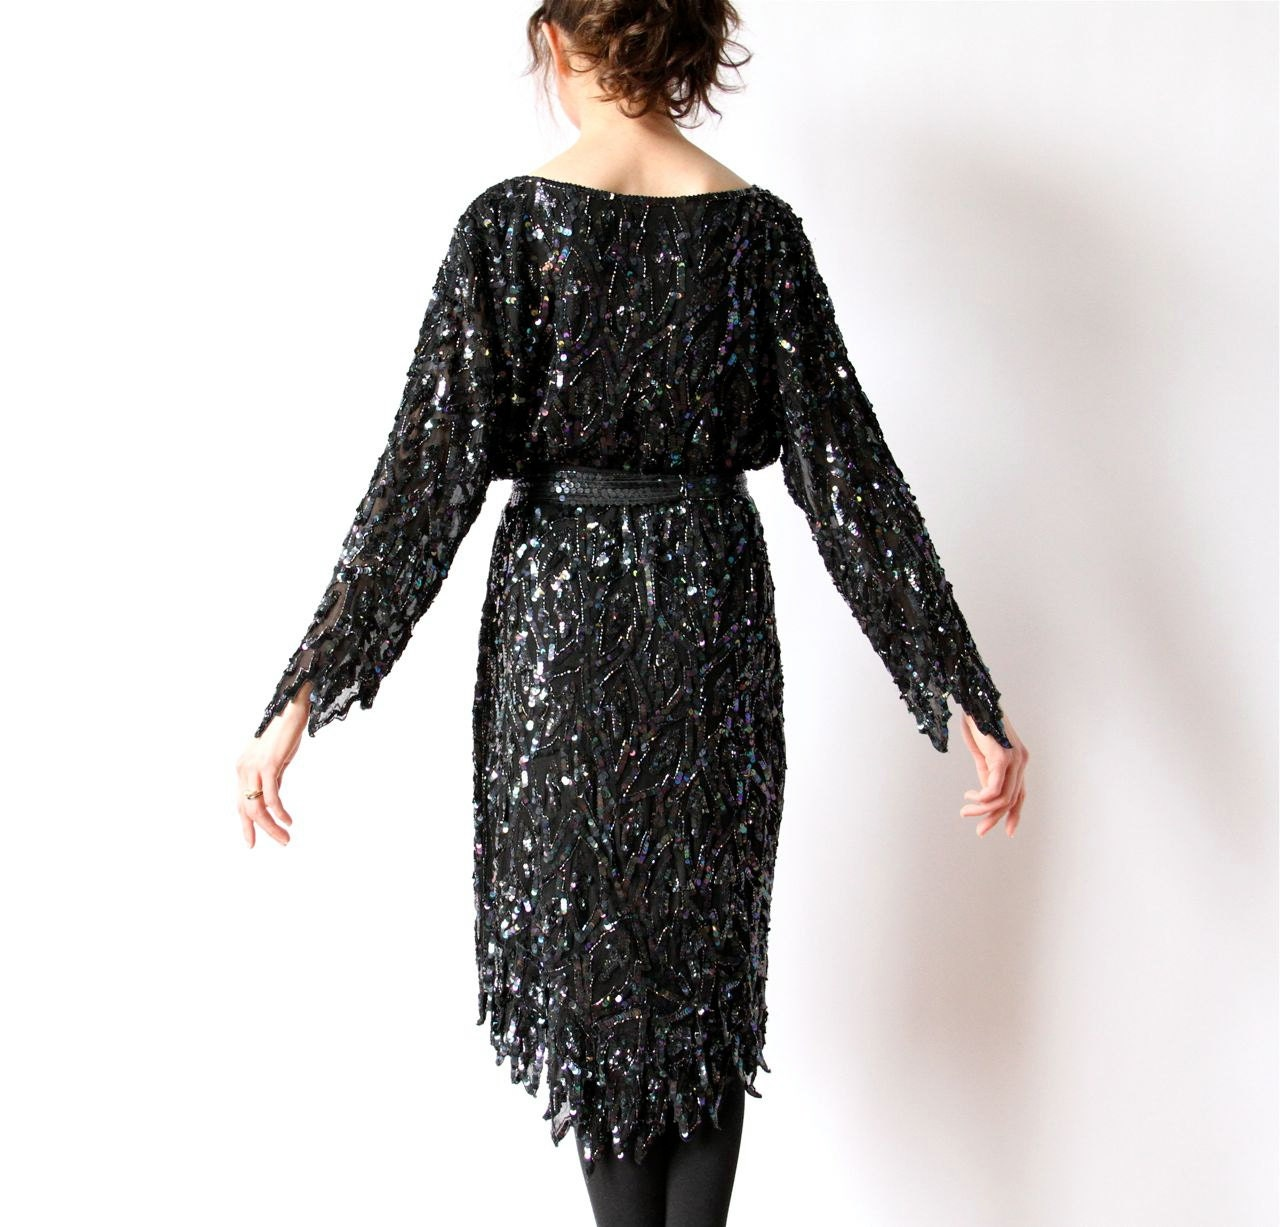 Black Sequin Cocktail Dress With Feather Hem 20